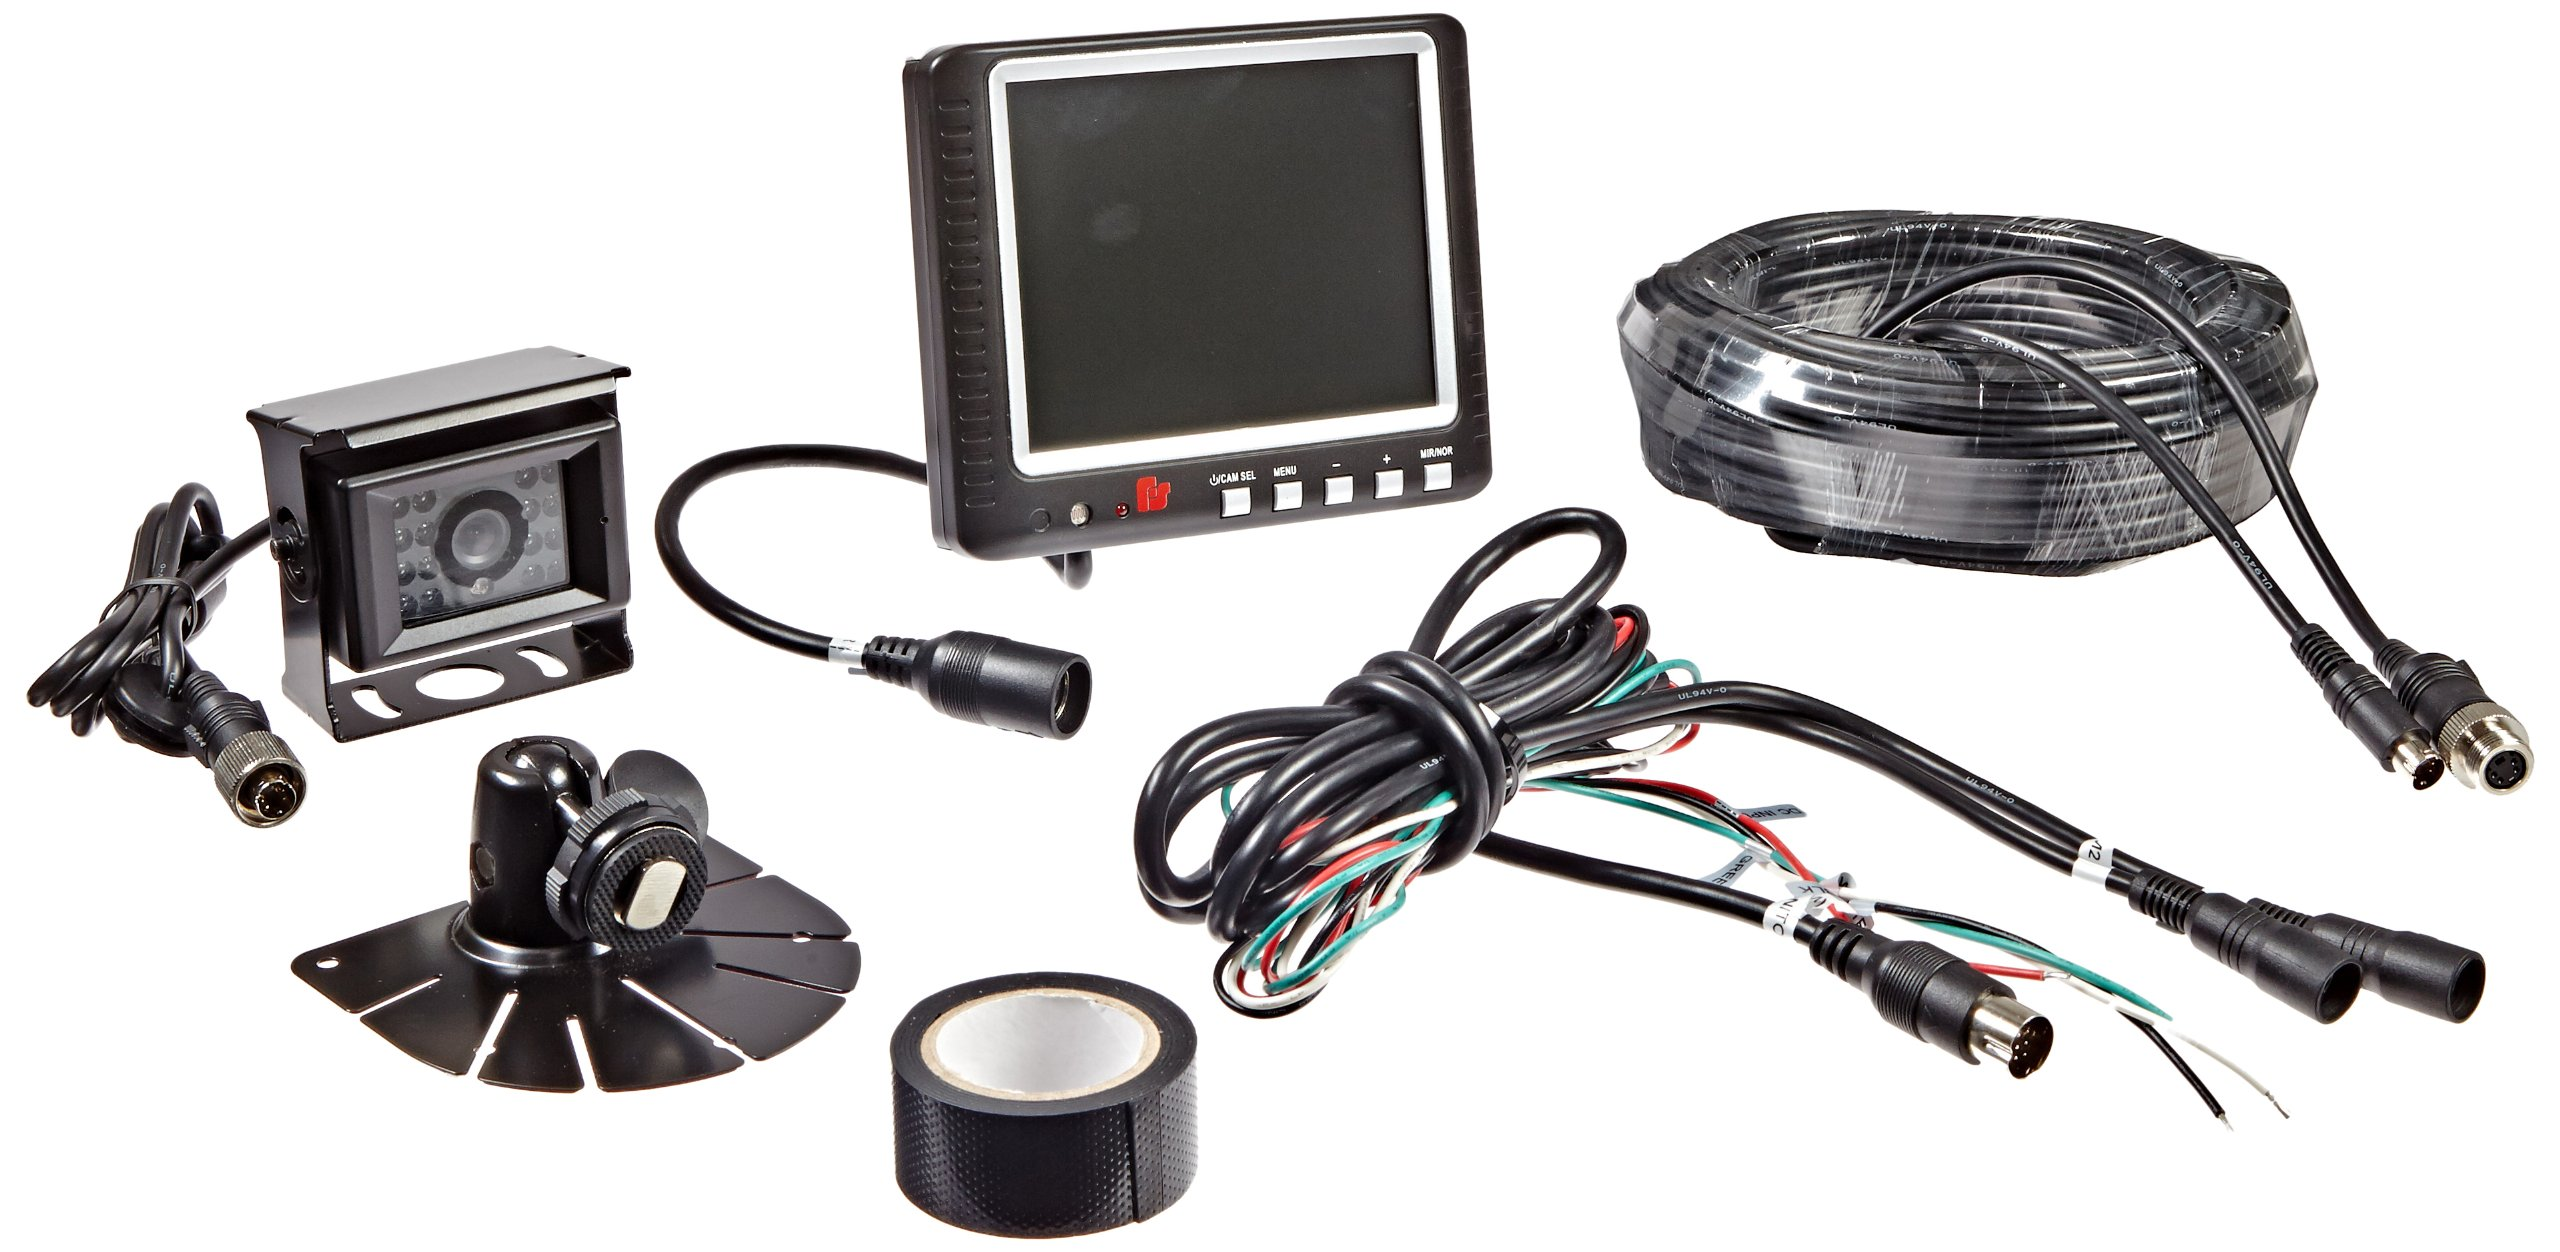 Federal Signal CAMSET56-NTSC-2 Reverse Mobile Camera System with 5.6'' Monitor and Standard Rear-View Camera